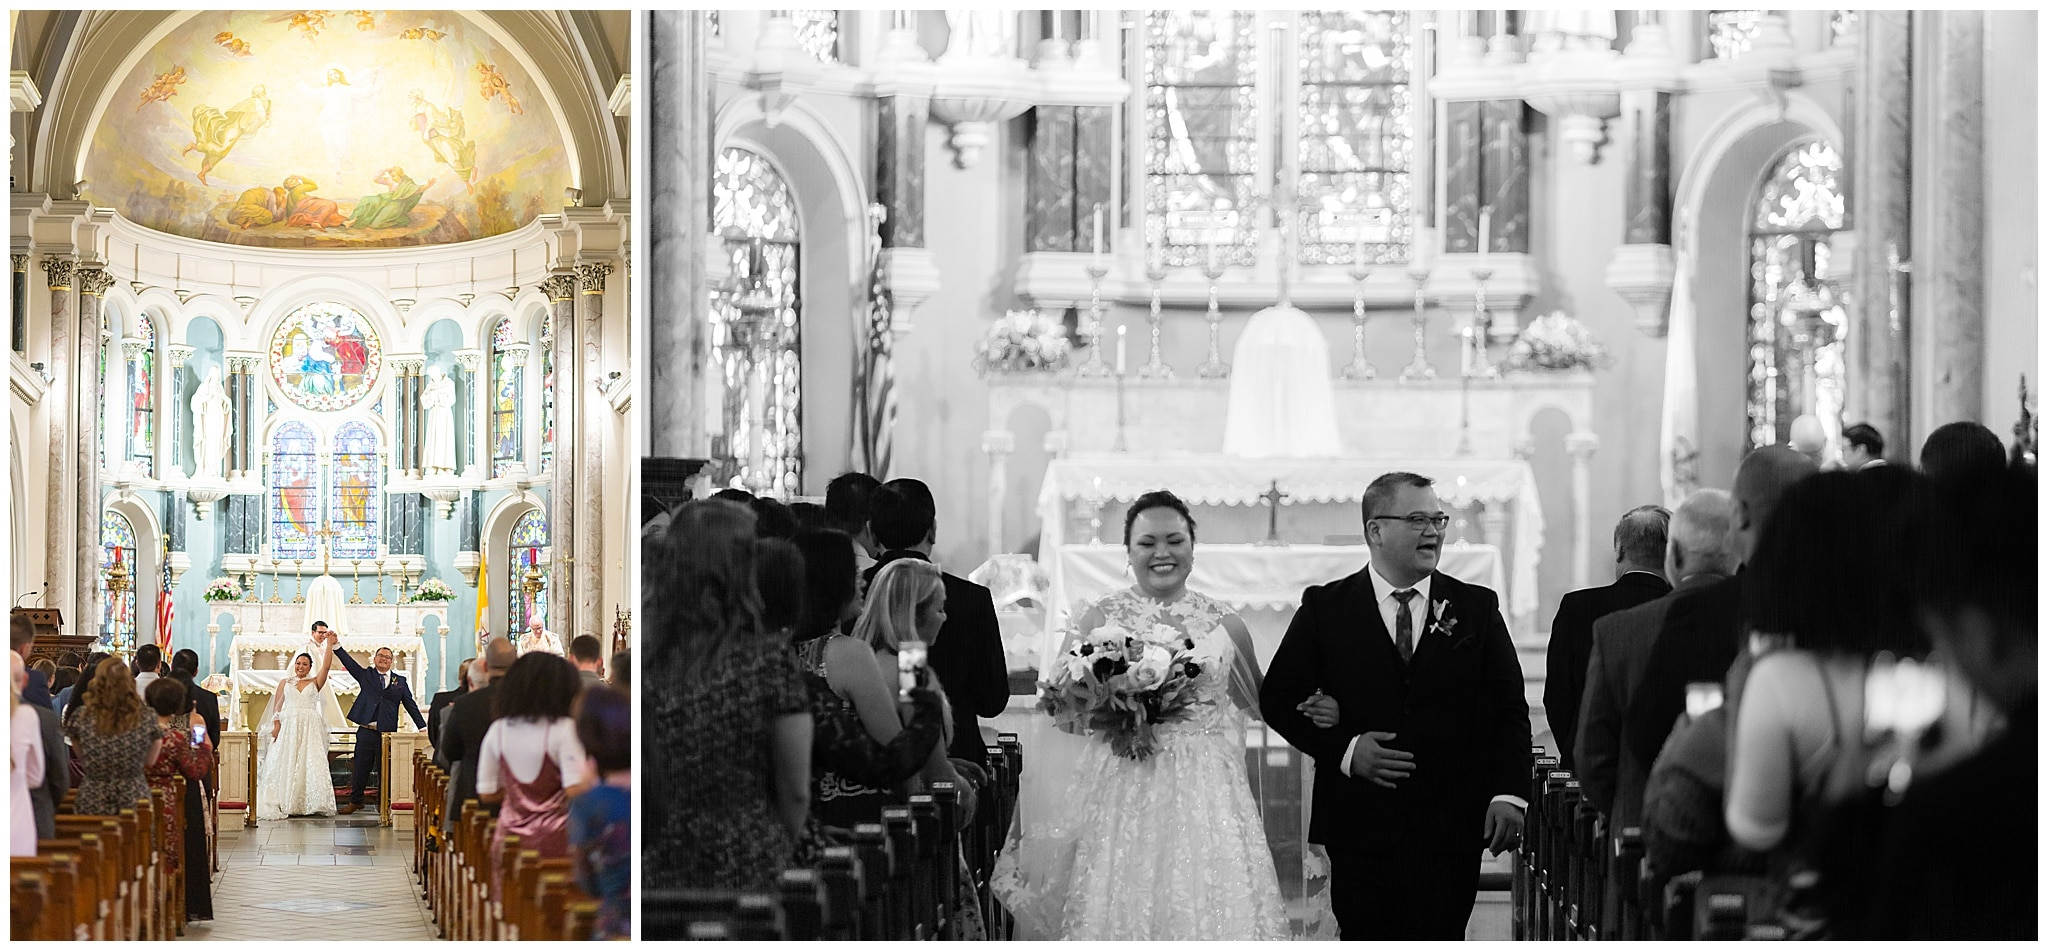 couple walks down the aisle at the end of their wedding ceremony at Annunciation Catholic Church in Houston TX by Swish and Click Photography